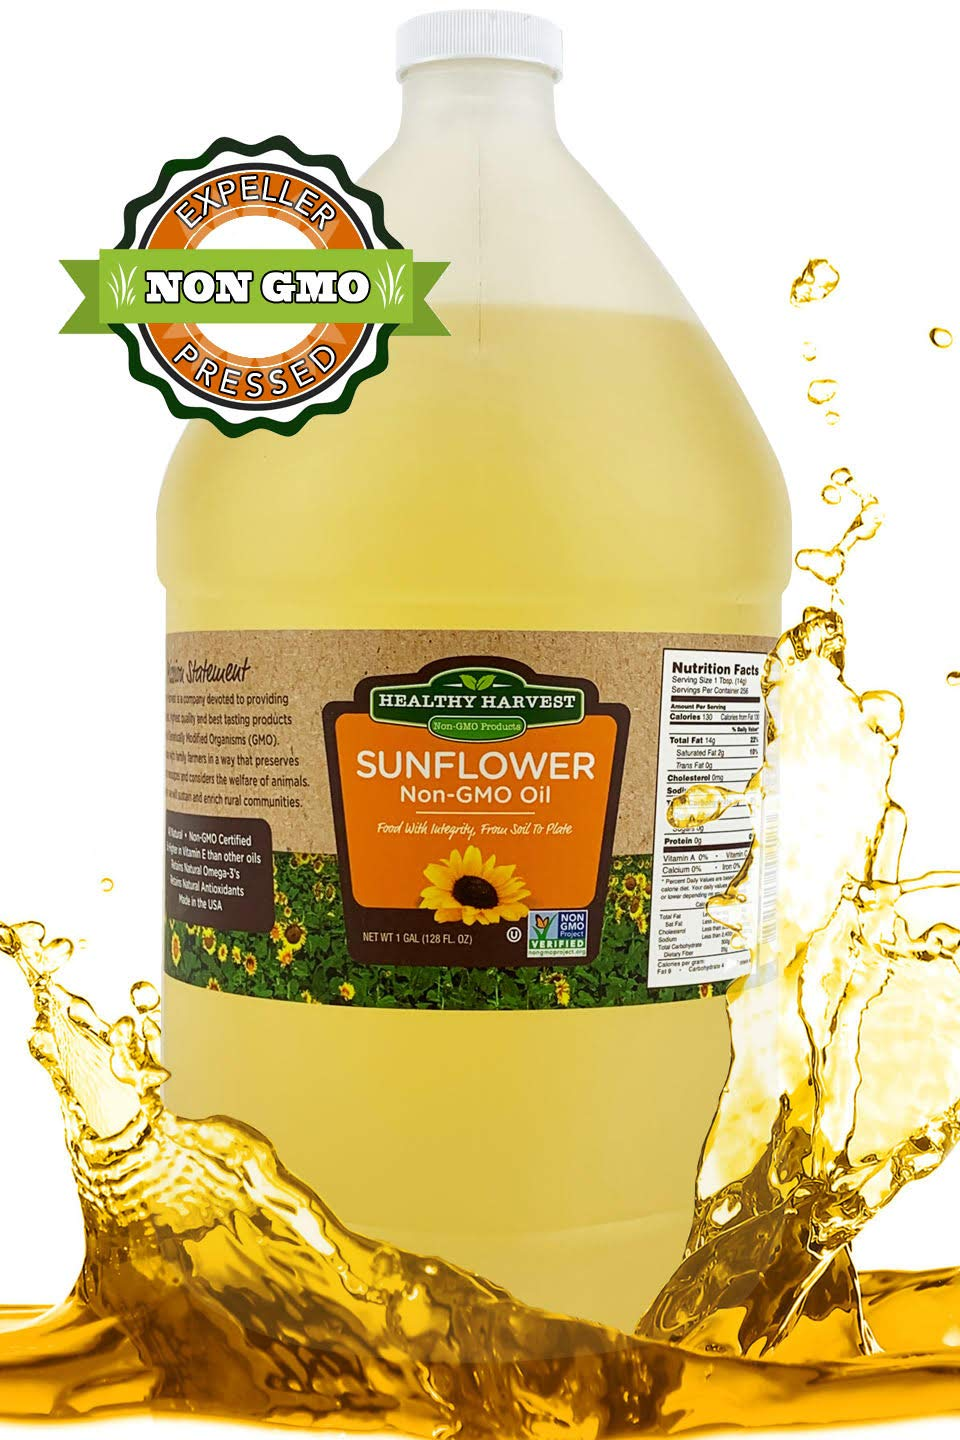 Healthy Harvest Non-GMO Sunflower Oil - Healthy Cooking Oil for Cooking, Baking, Frying & More - Naturally Processed to Retain Natural Antioxidants {One Gallon} by Healthy Harvest Productions